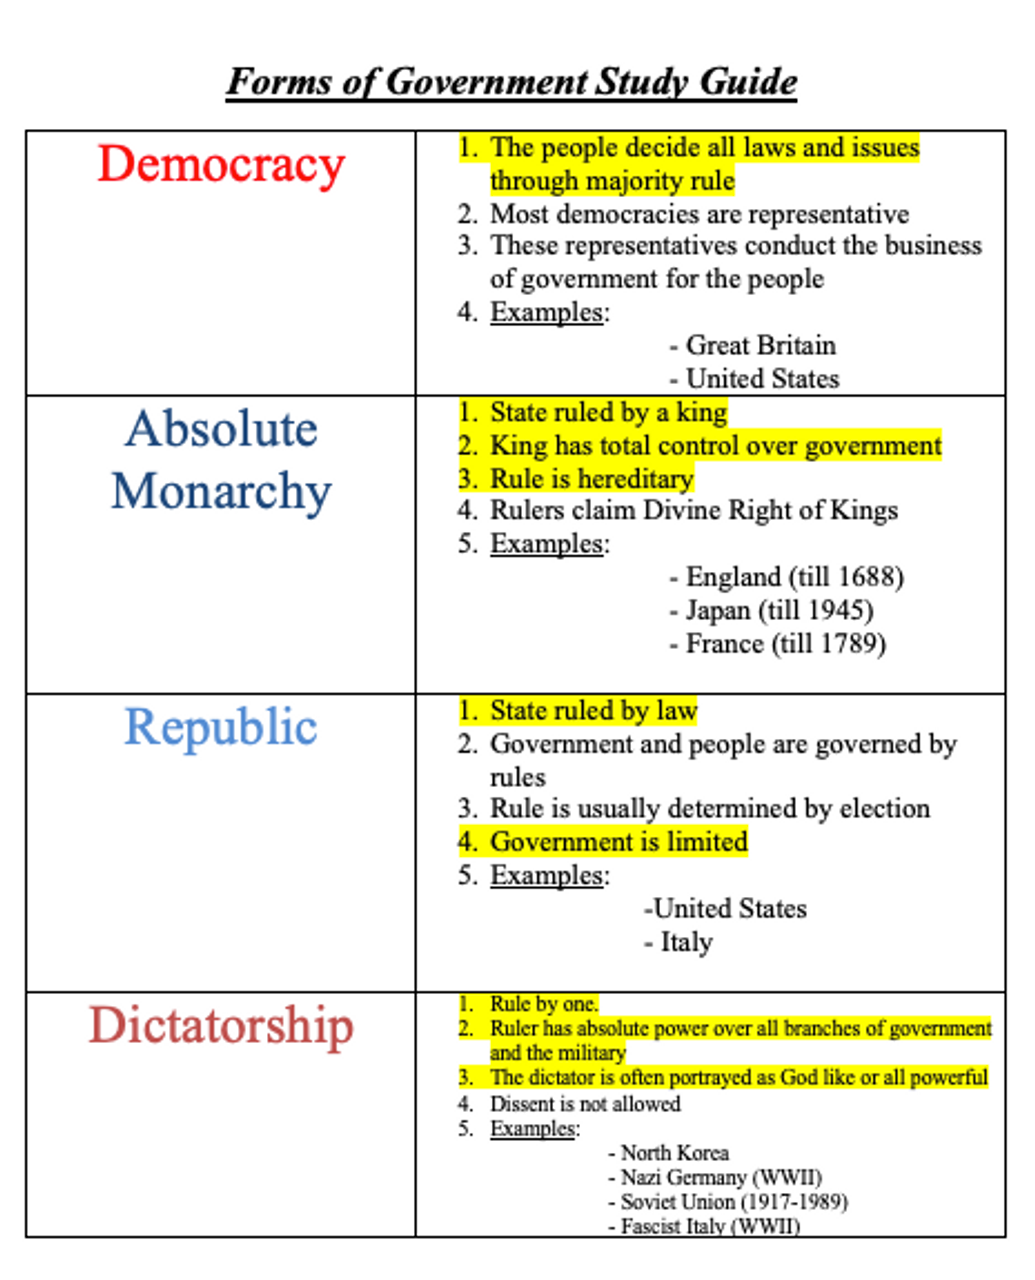 Forms of Government Study Guide